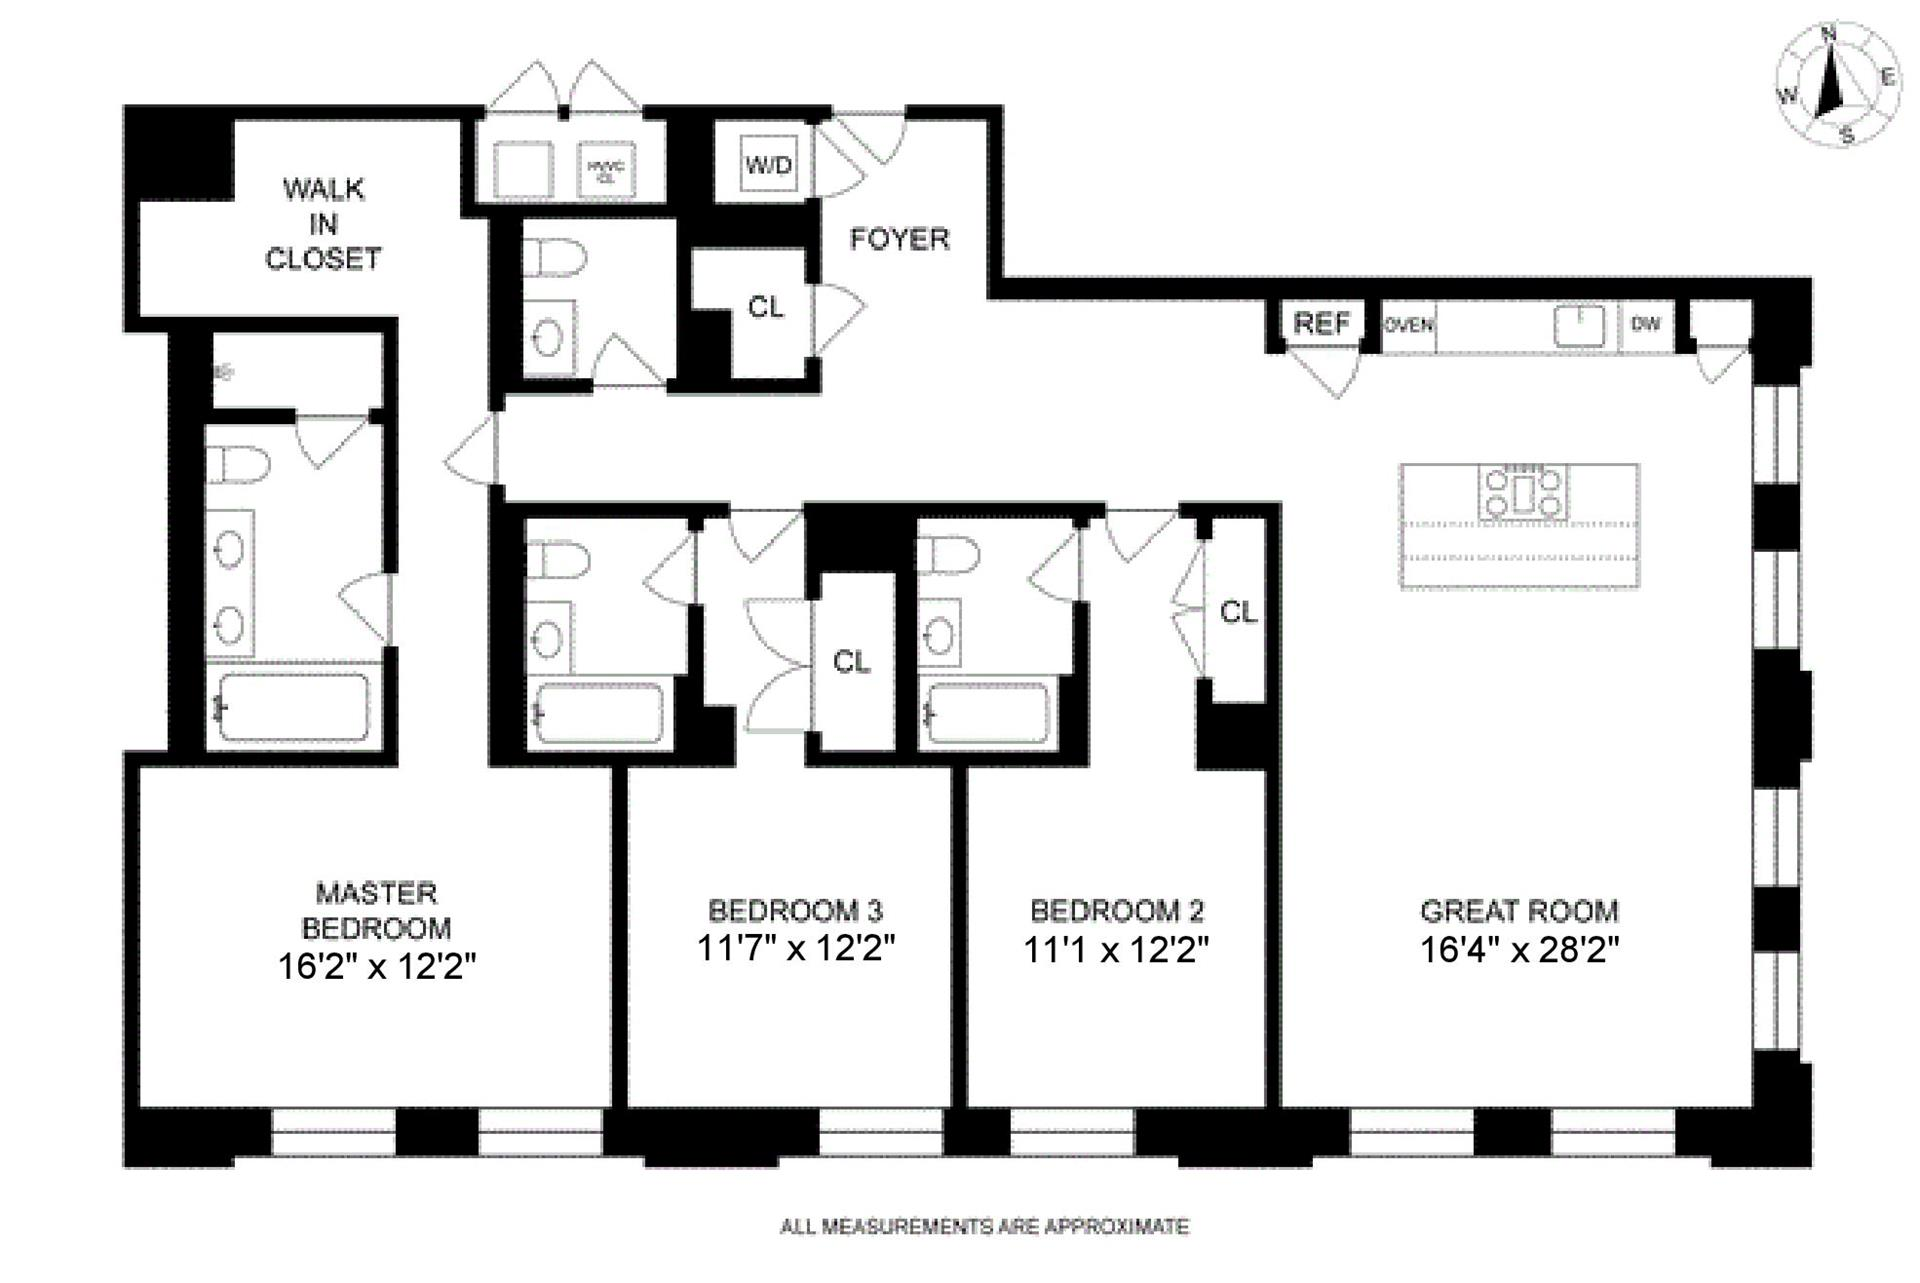 Floor plan of 250 West St, 8G - TriBeCa, New York